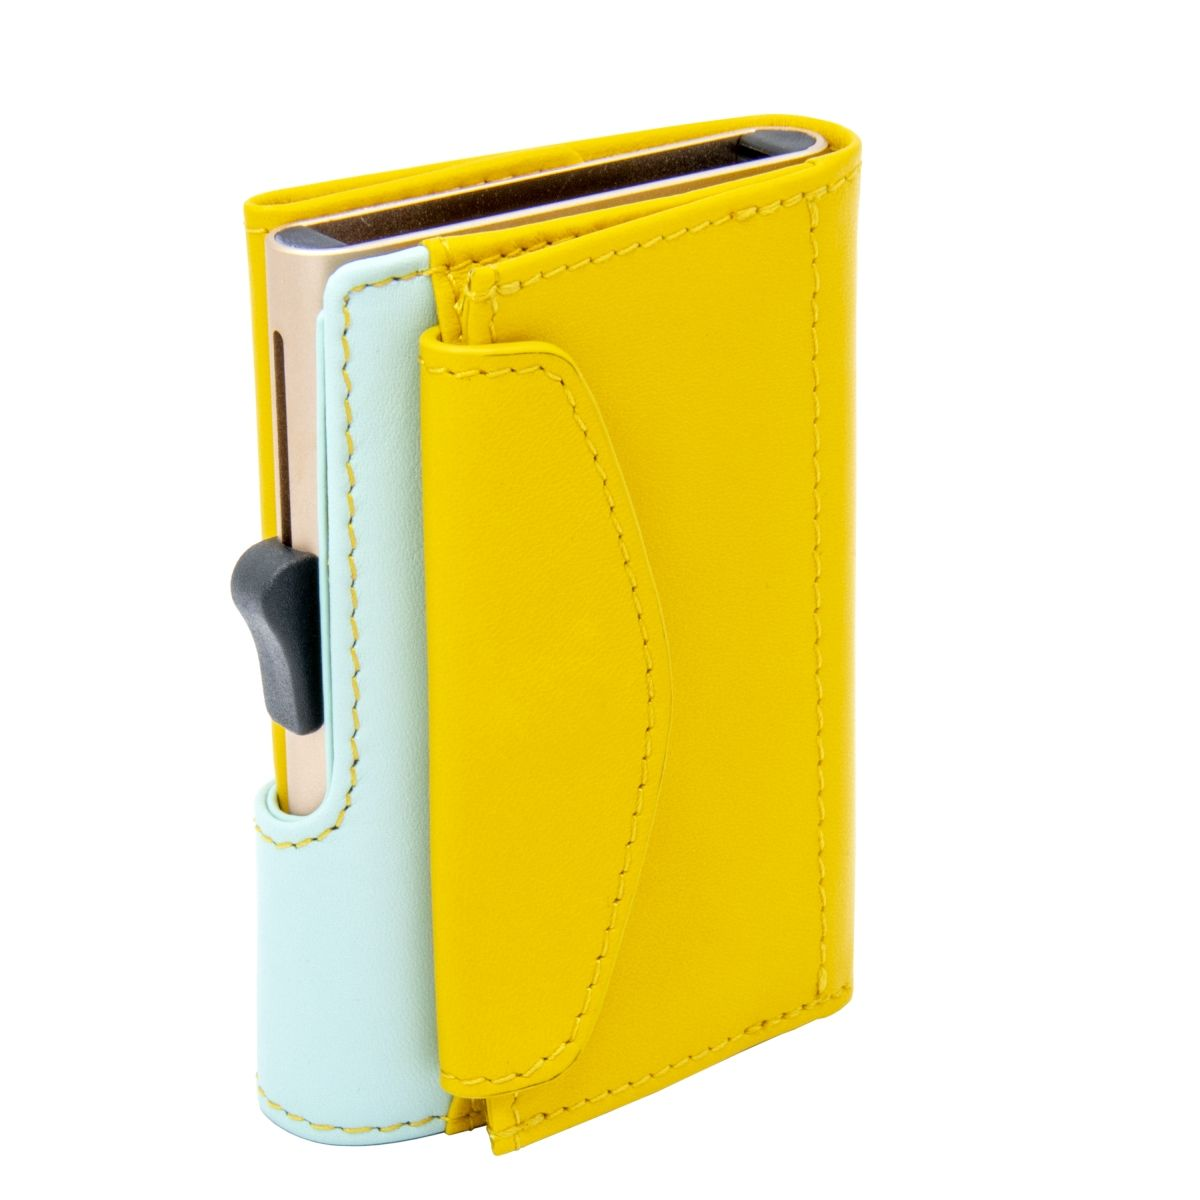 XL Aluminum Wallet with Genuine Leather and Coins Pocket - Saffron/Aqua